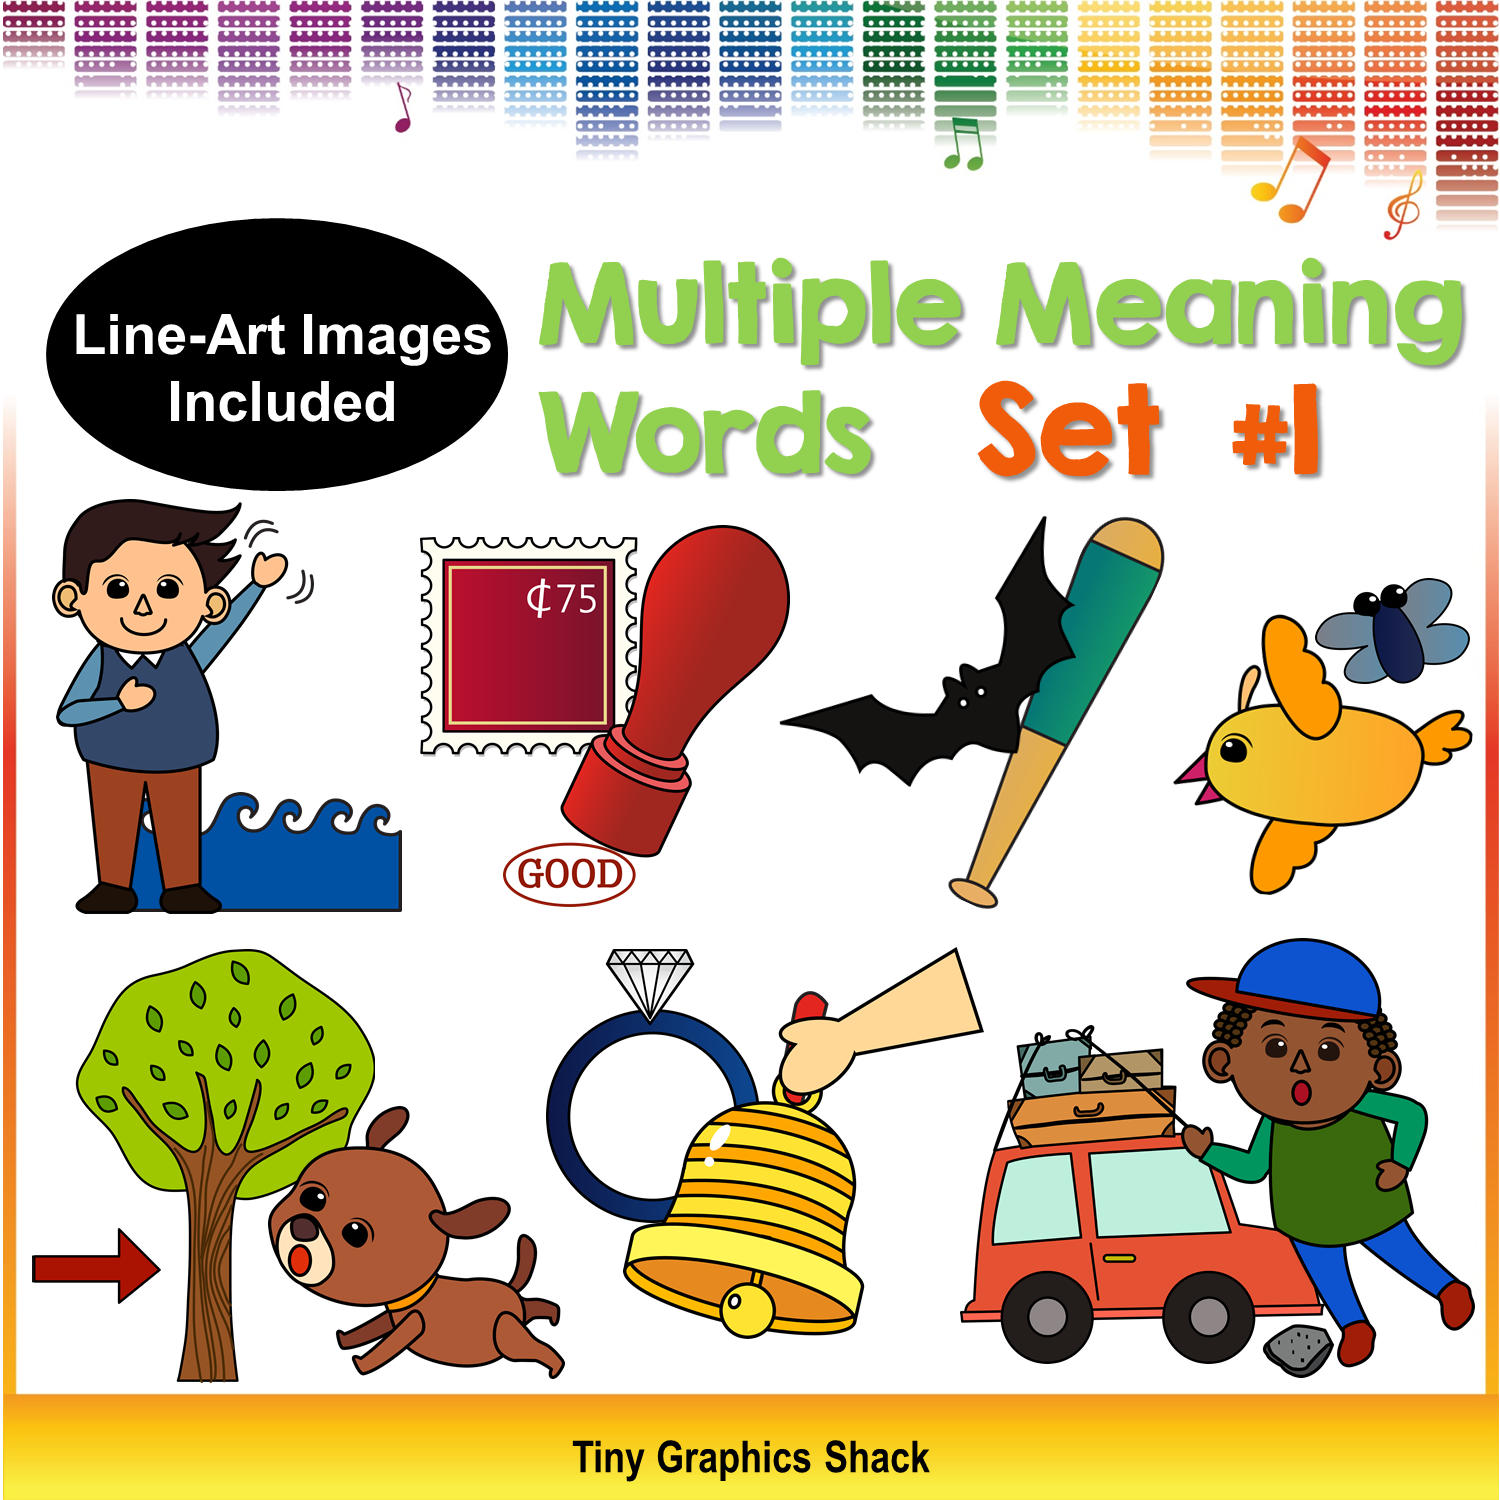 Multiple Meaning Words Clipart Set 1 Homonyms